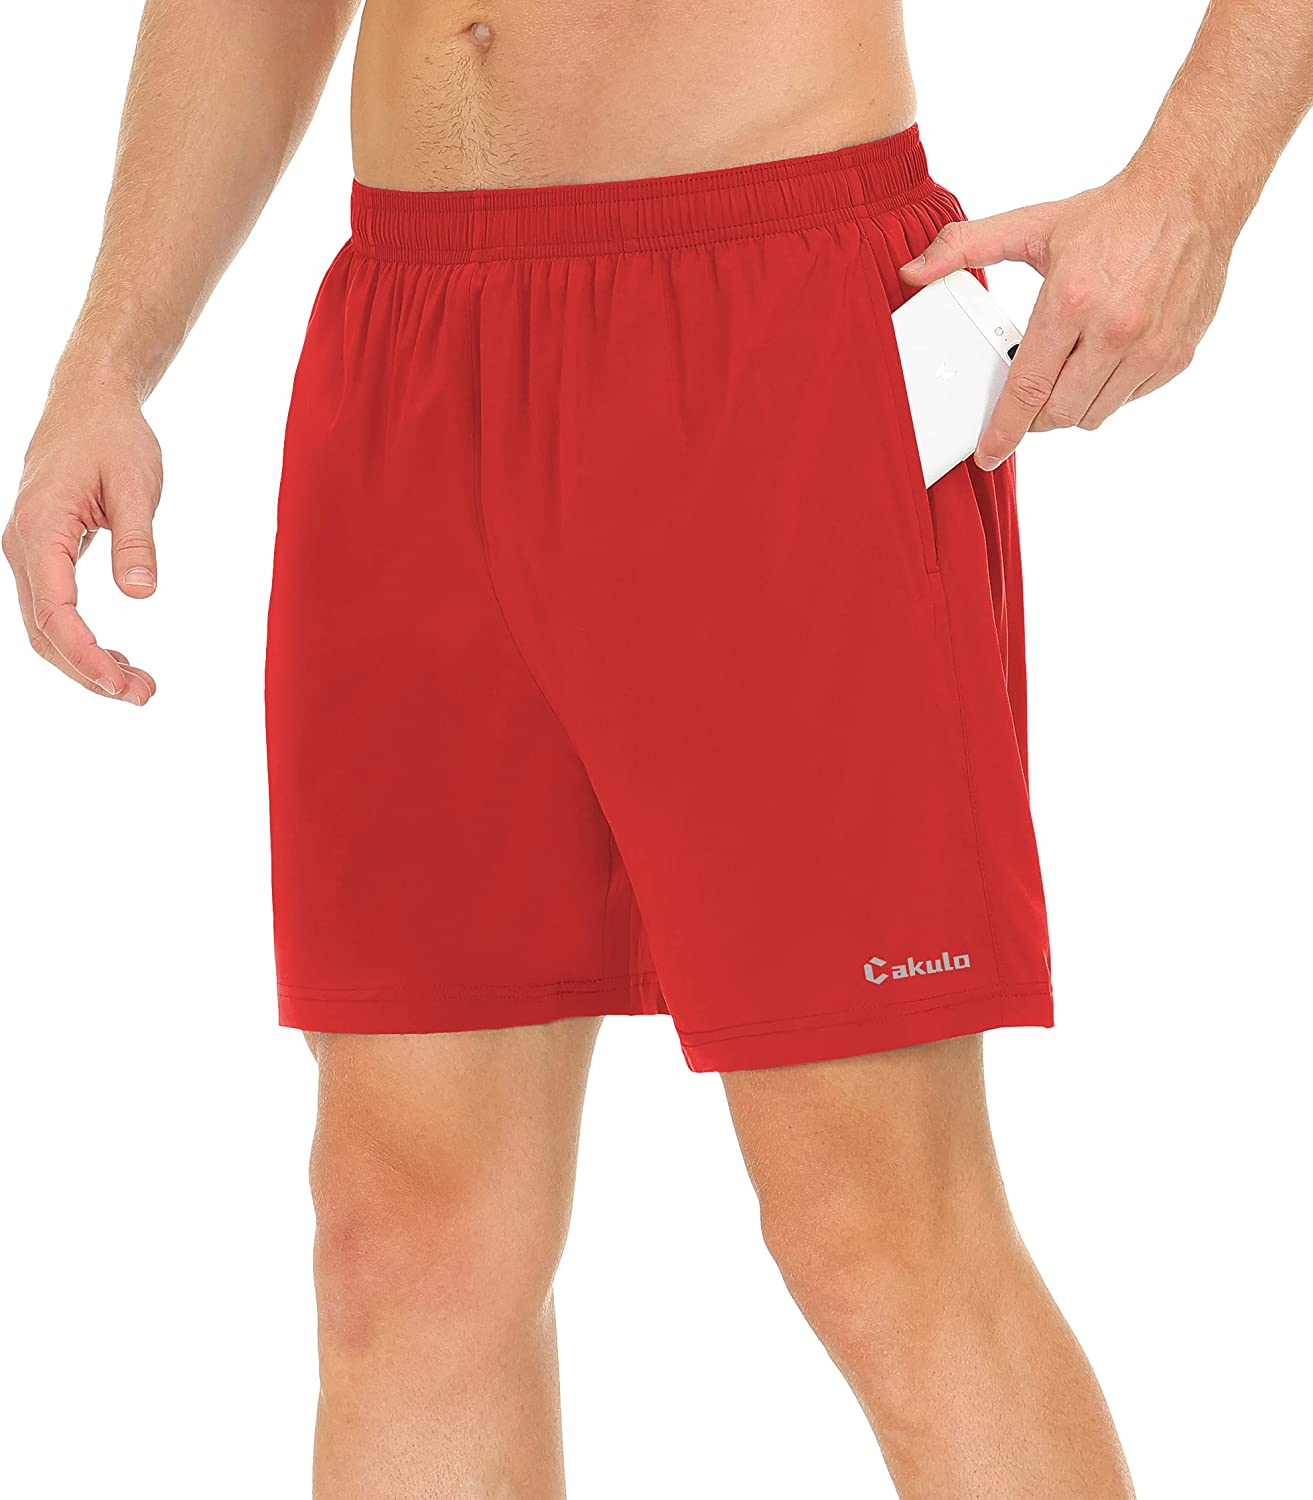 Cakulo Men's Running Shorts 5 Inch Lightweight Quick Dry Athletic Workout Shorts with Pockets: Clothing